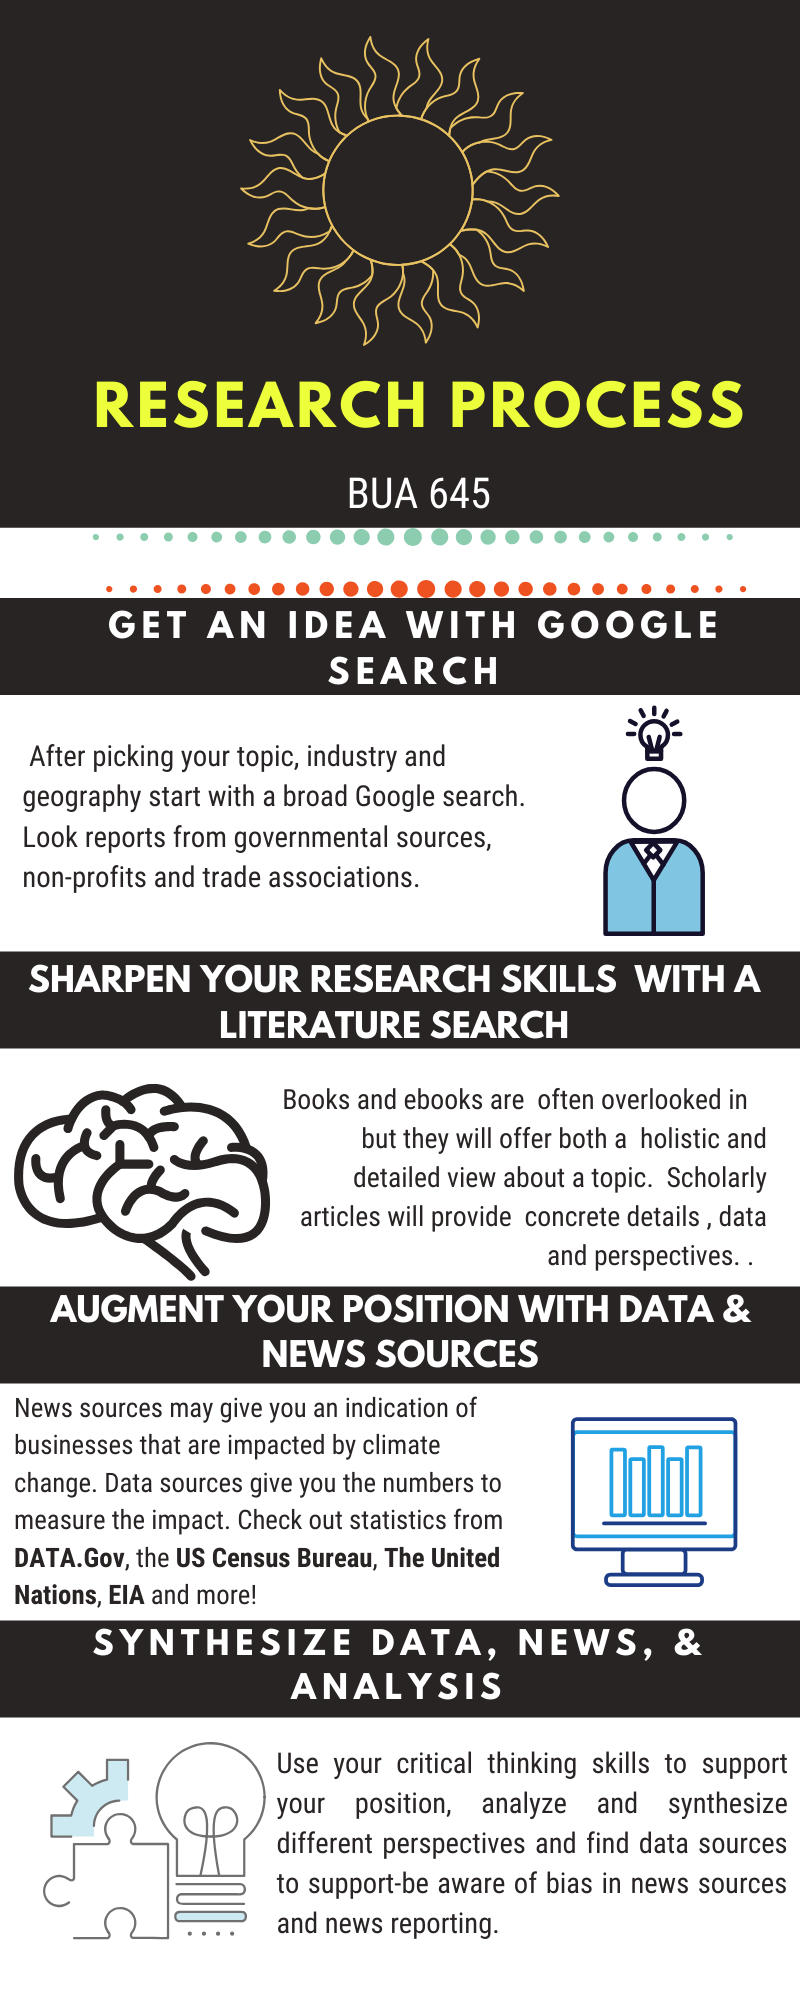 Research process infographic